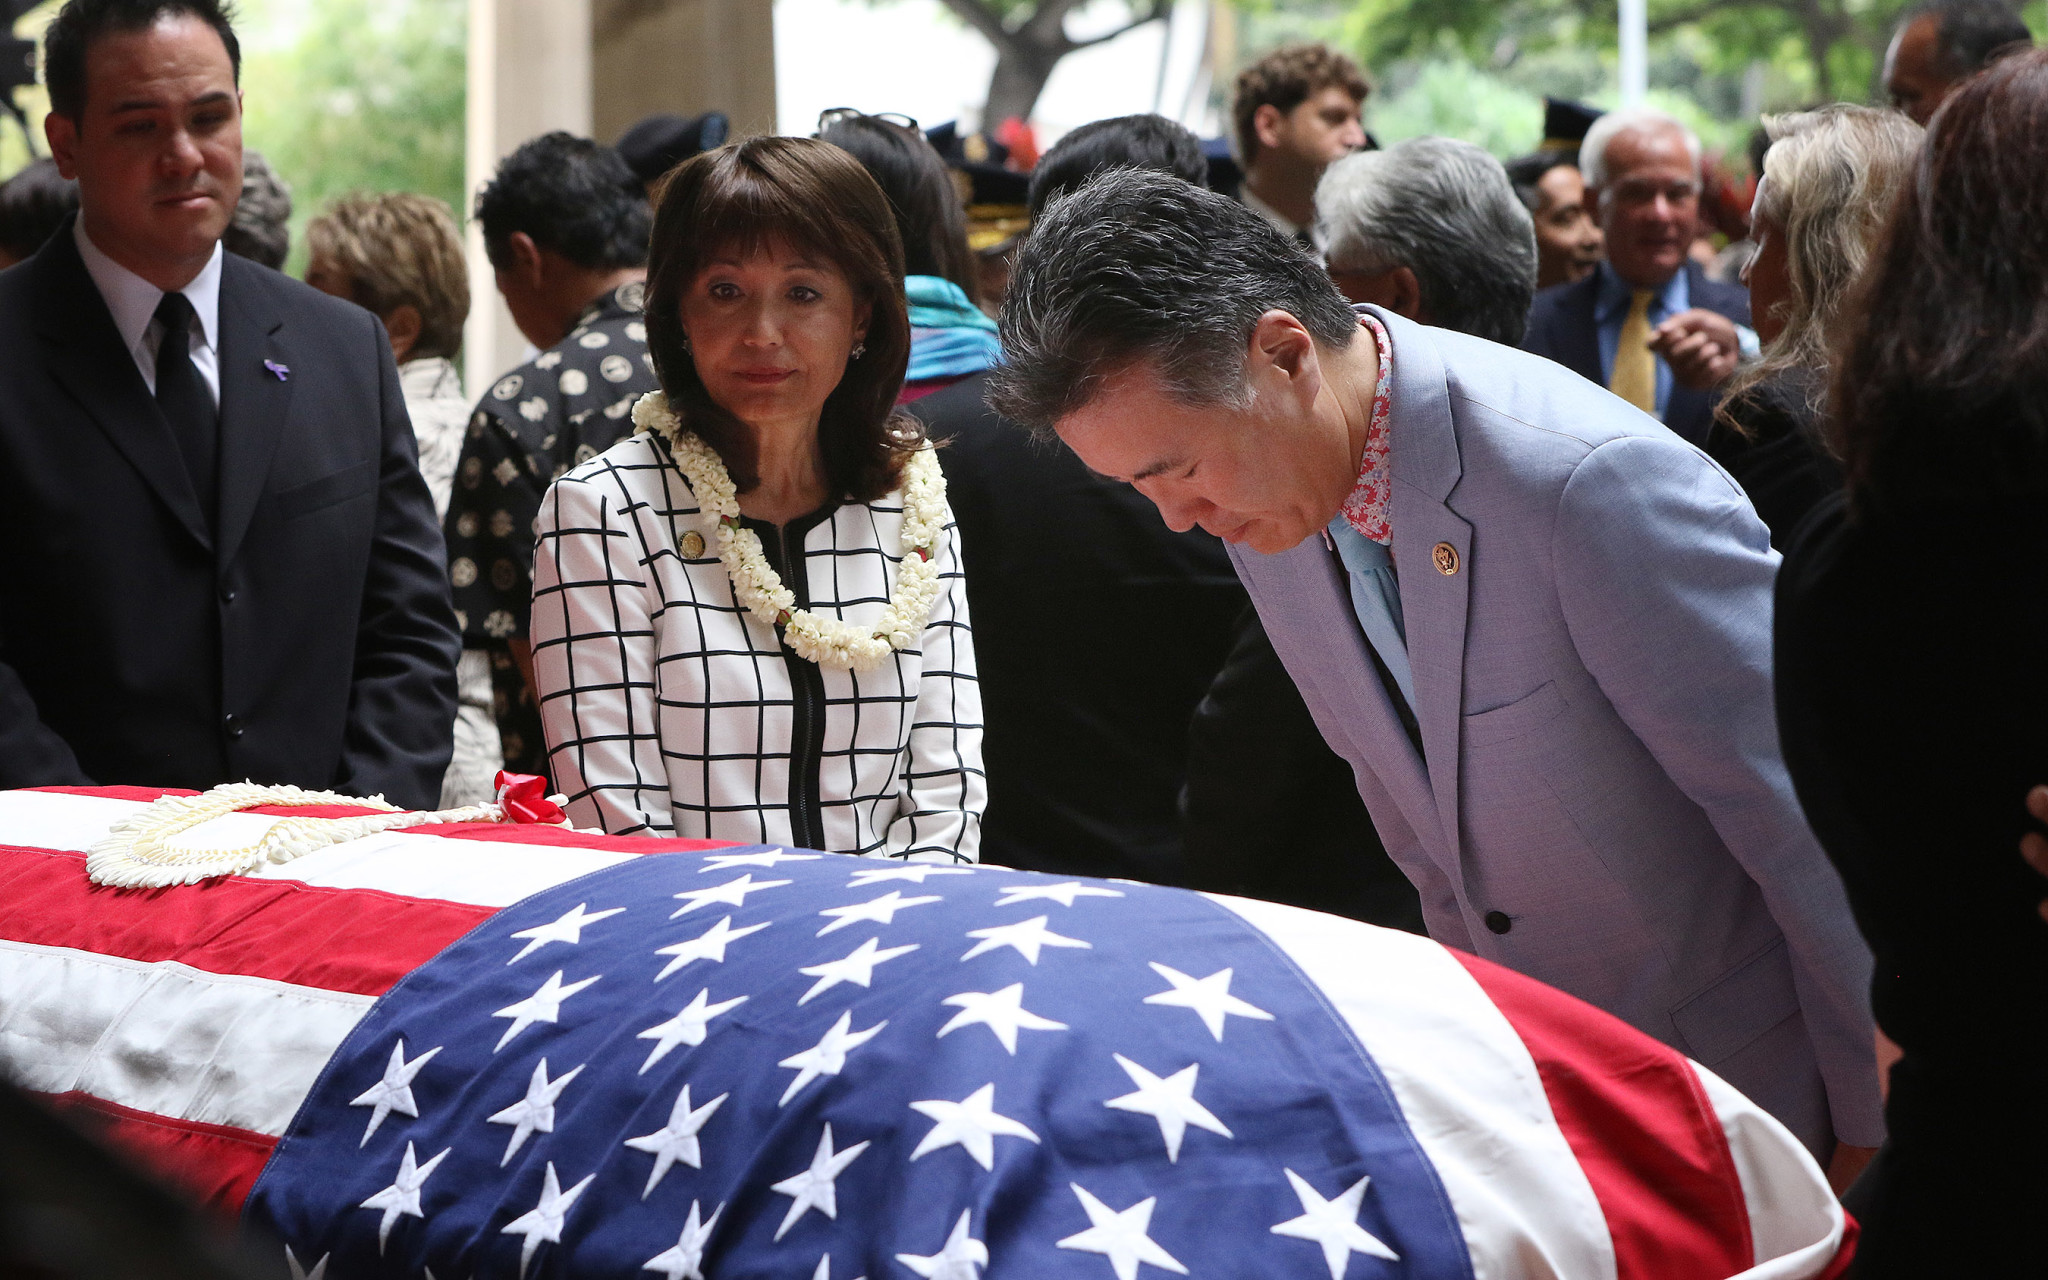 <p>California Congressman Mark Takano bows his head at Takai's casket, as state Sen. Donna Mercado Kim and state Rep. Aaron Ling Johanson wait to pay their respects.</p>